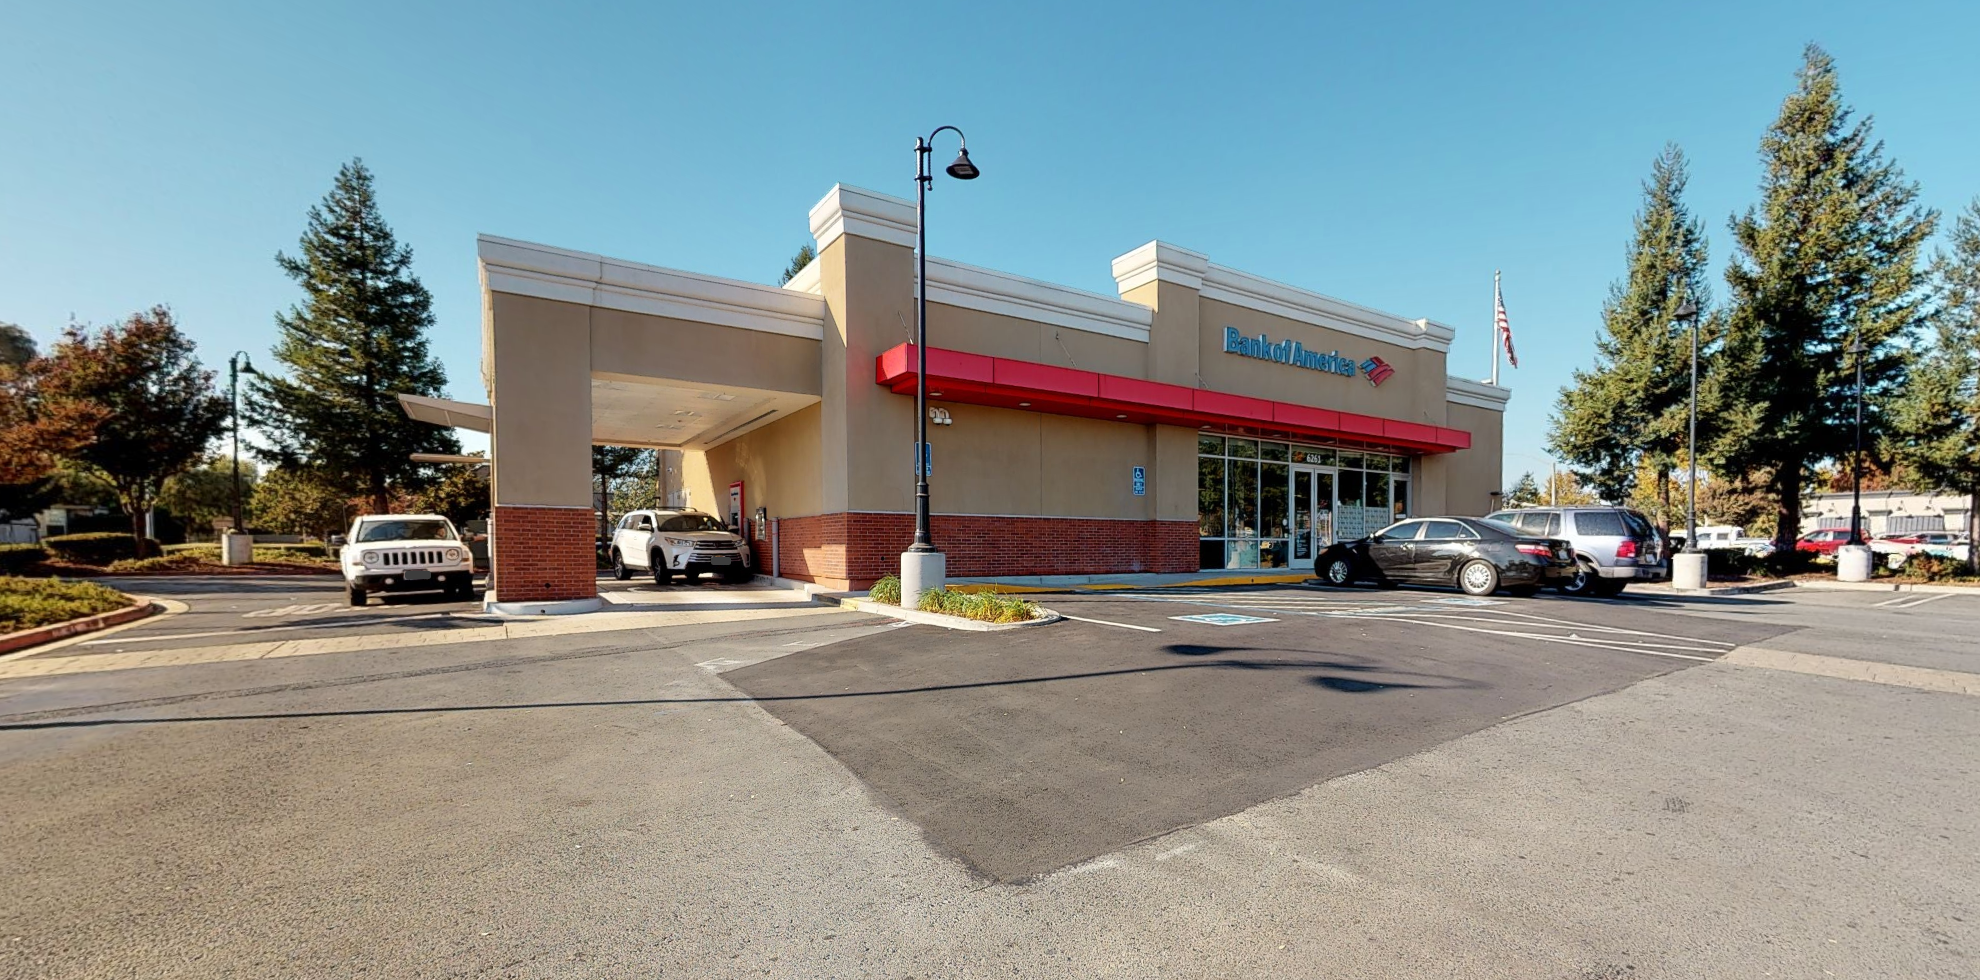 Bank of America financial center with drive-thru ATM | 6261 Lone Tree Way, Brentwood, CA 94513